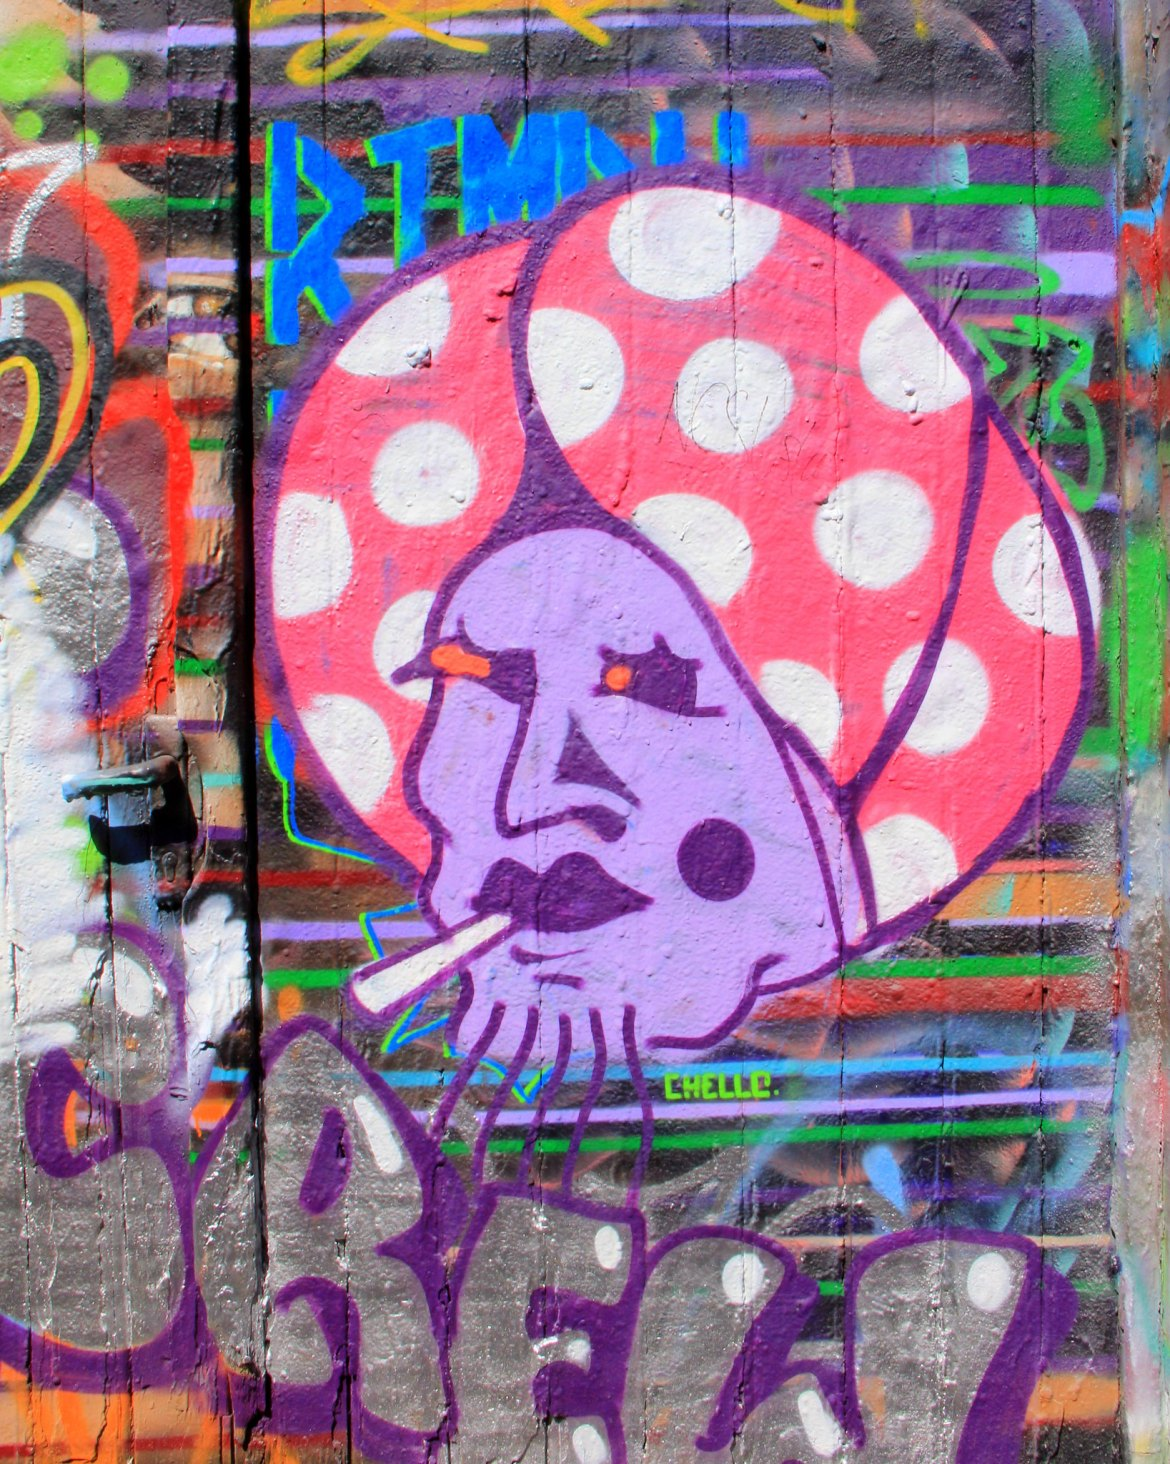 Ghent street art is approved by the city